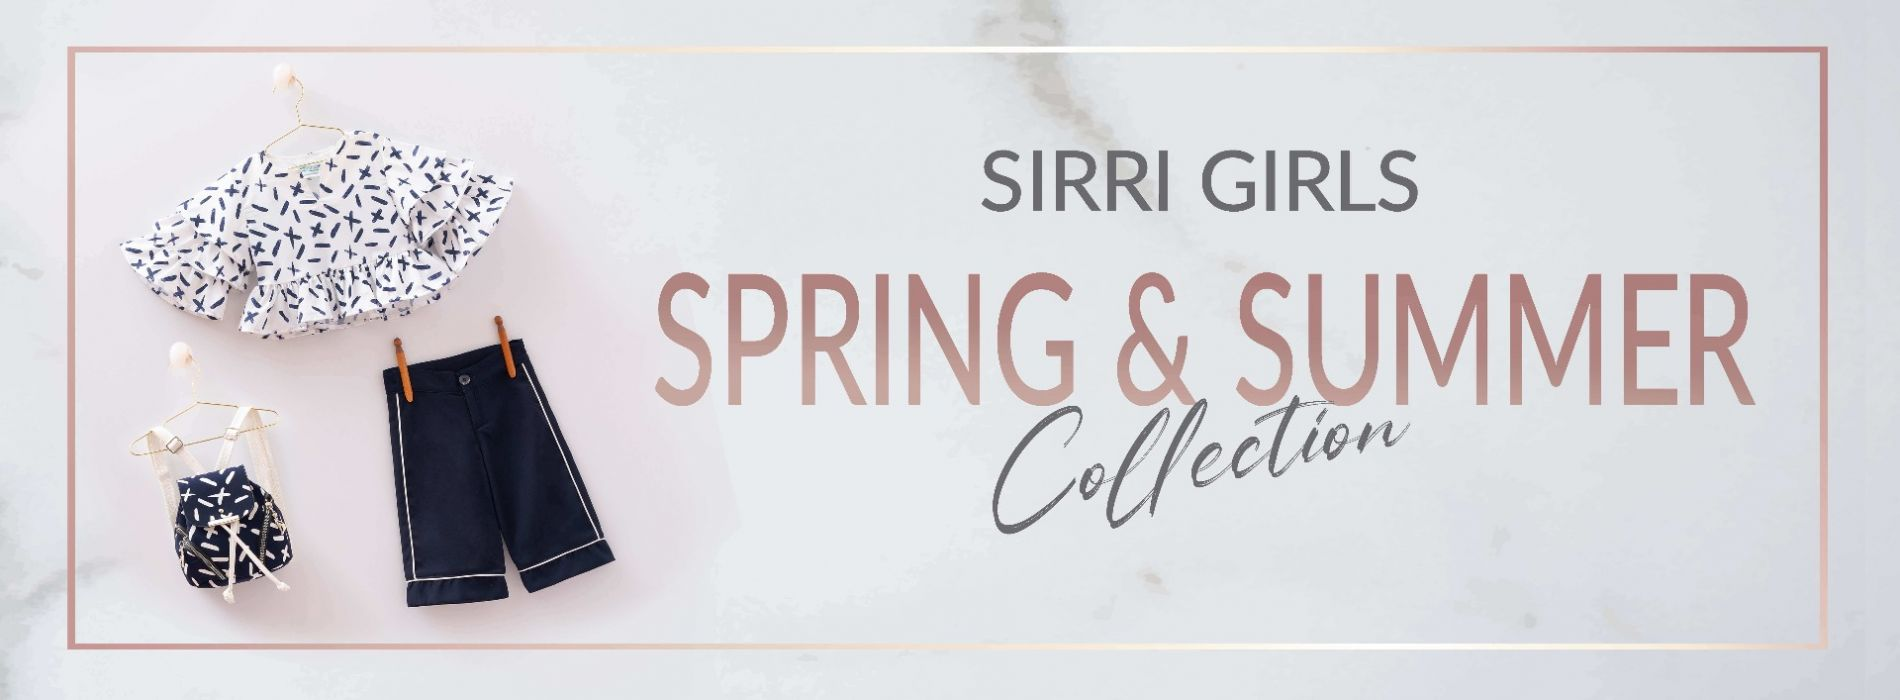 https://www.sirri.co.uk/men/shoes.html